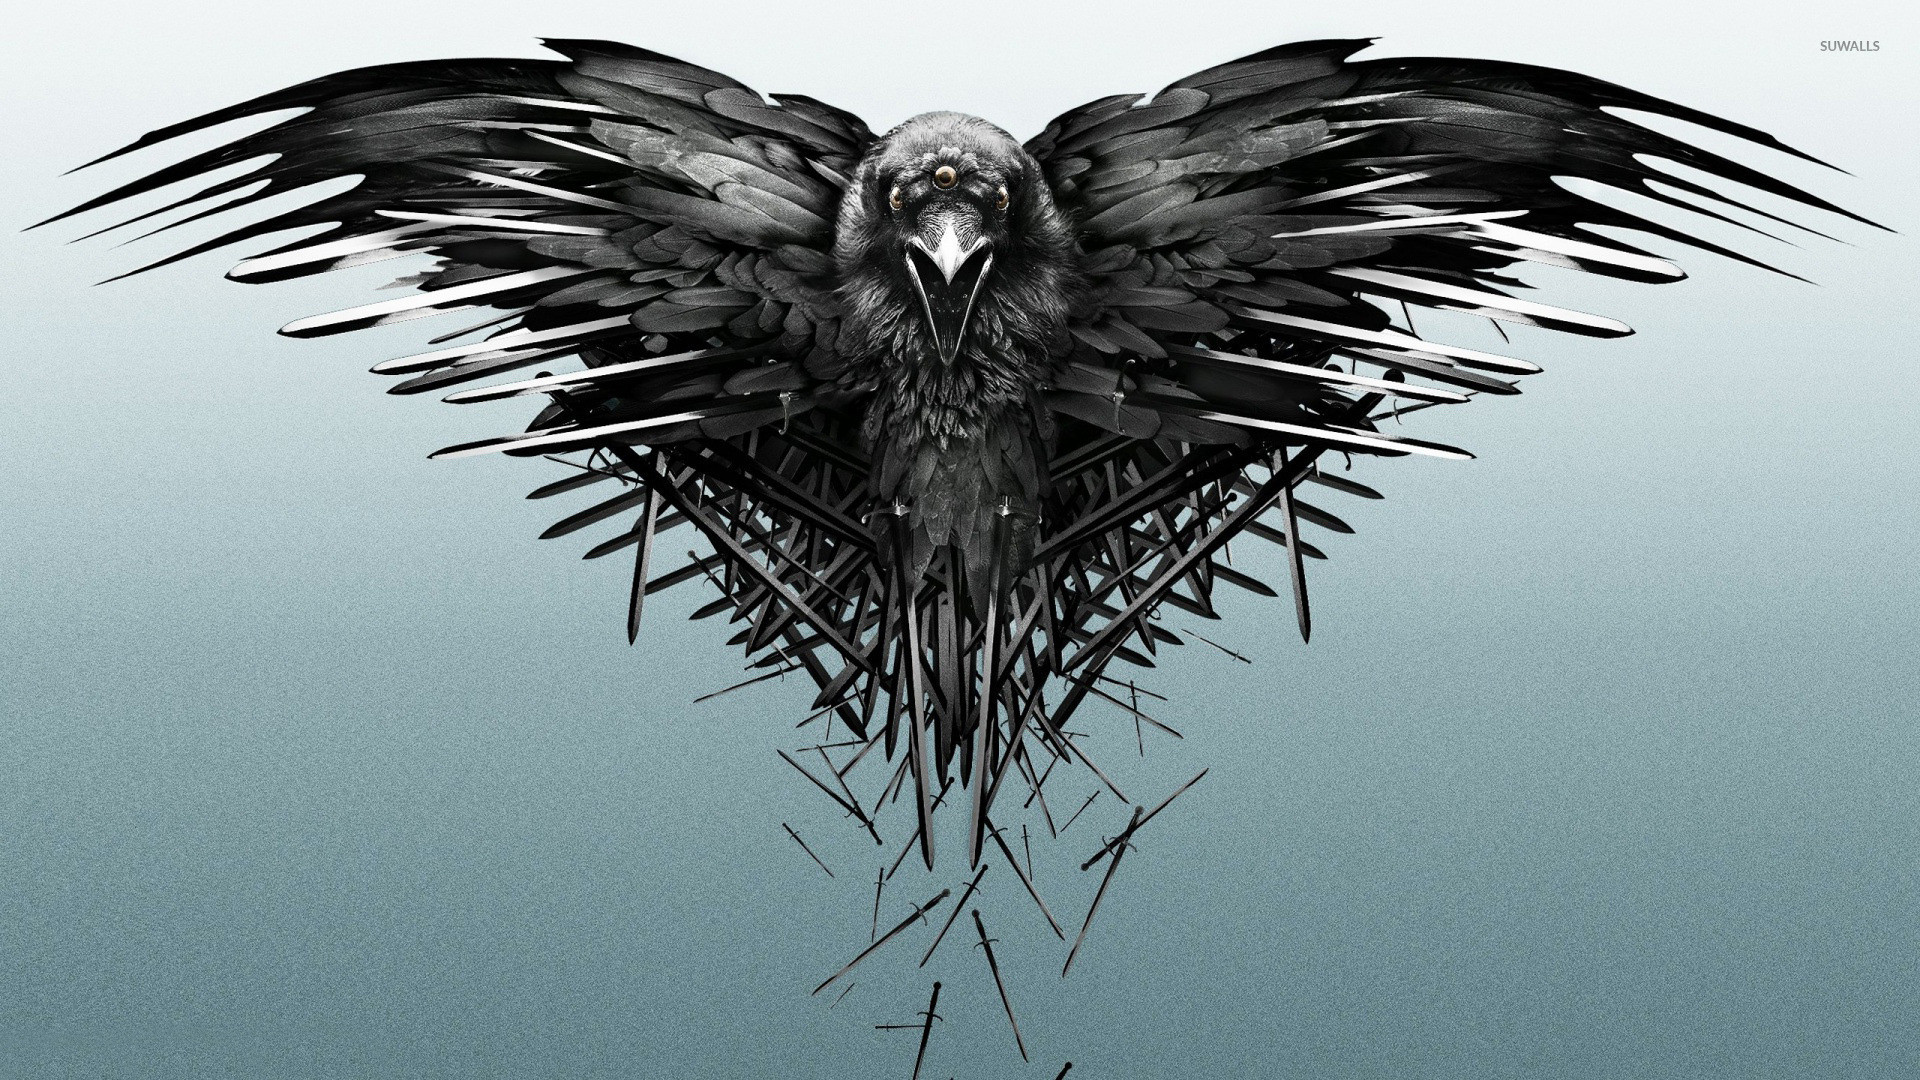 1920x1080 The three-eyed raven - Game of Thrones wallpaper  jpg